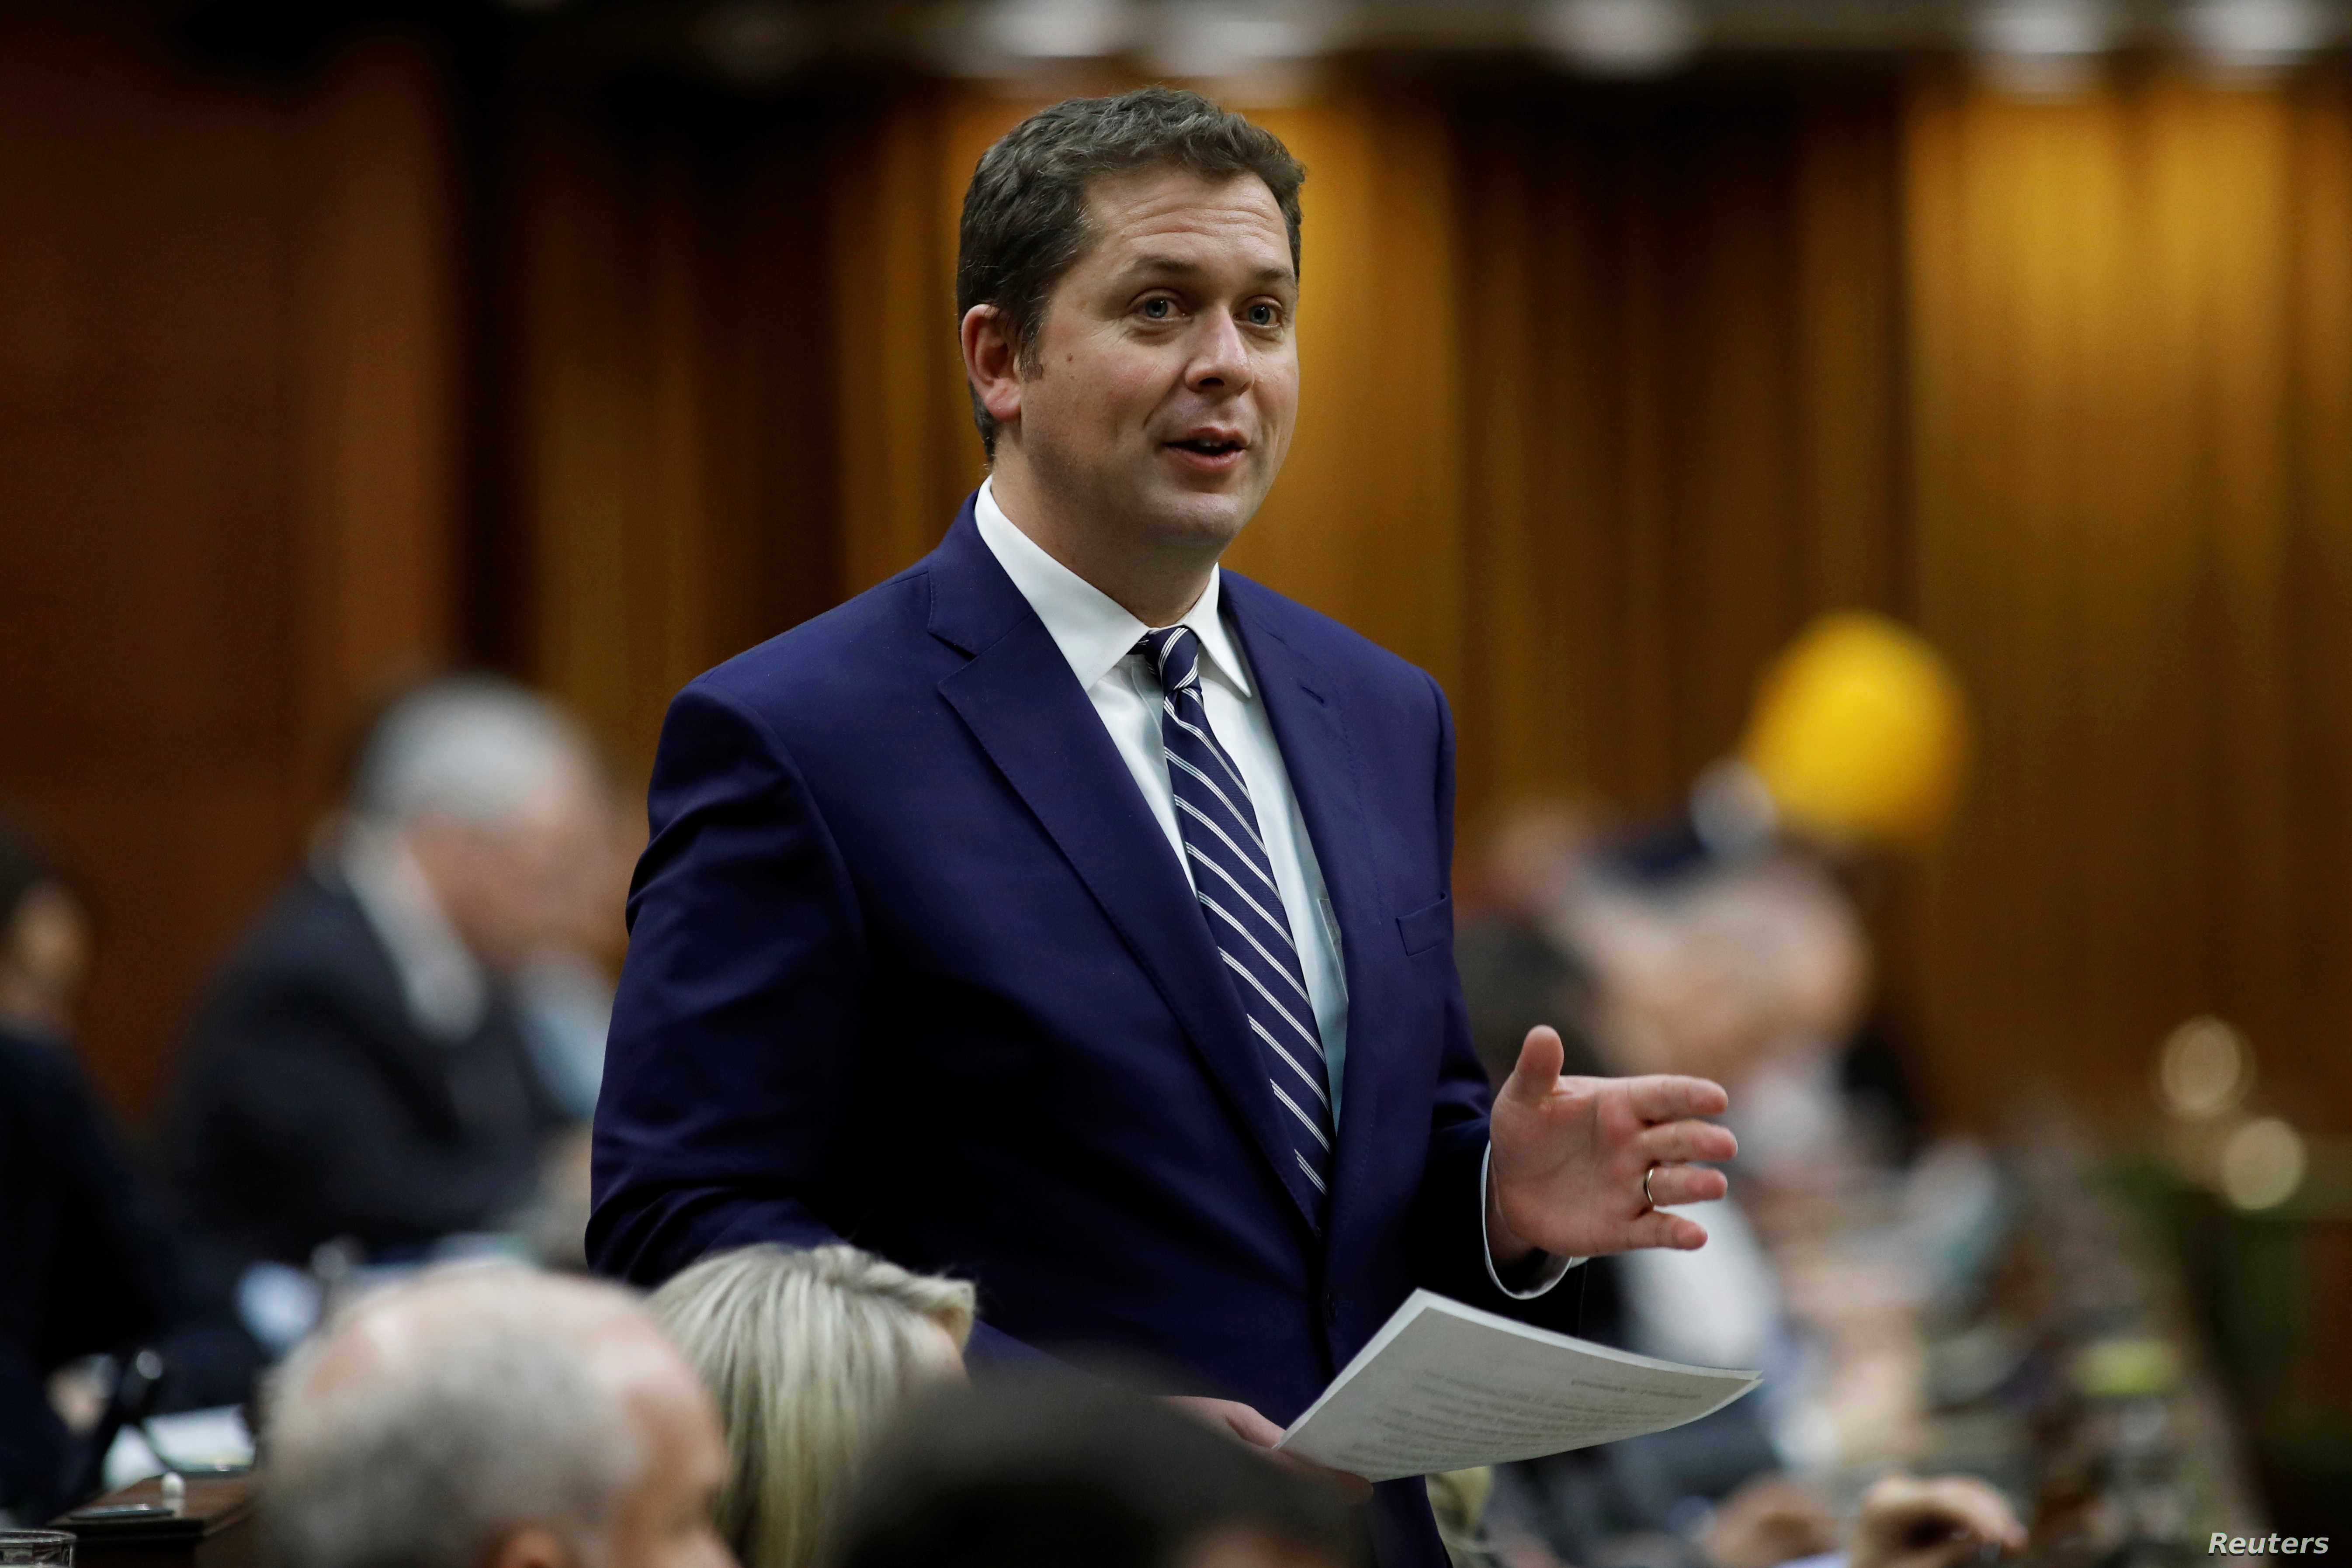 Canadian Opposition Conservative Leader Resigns.